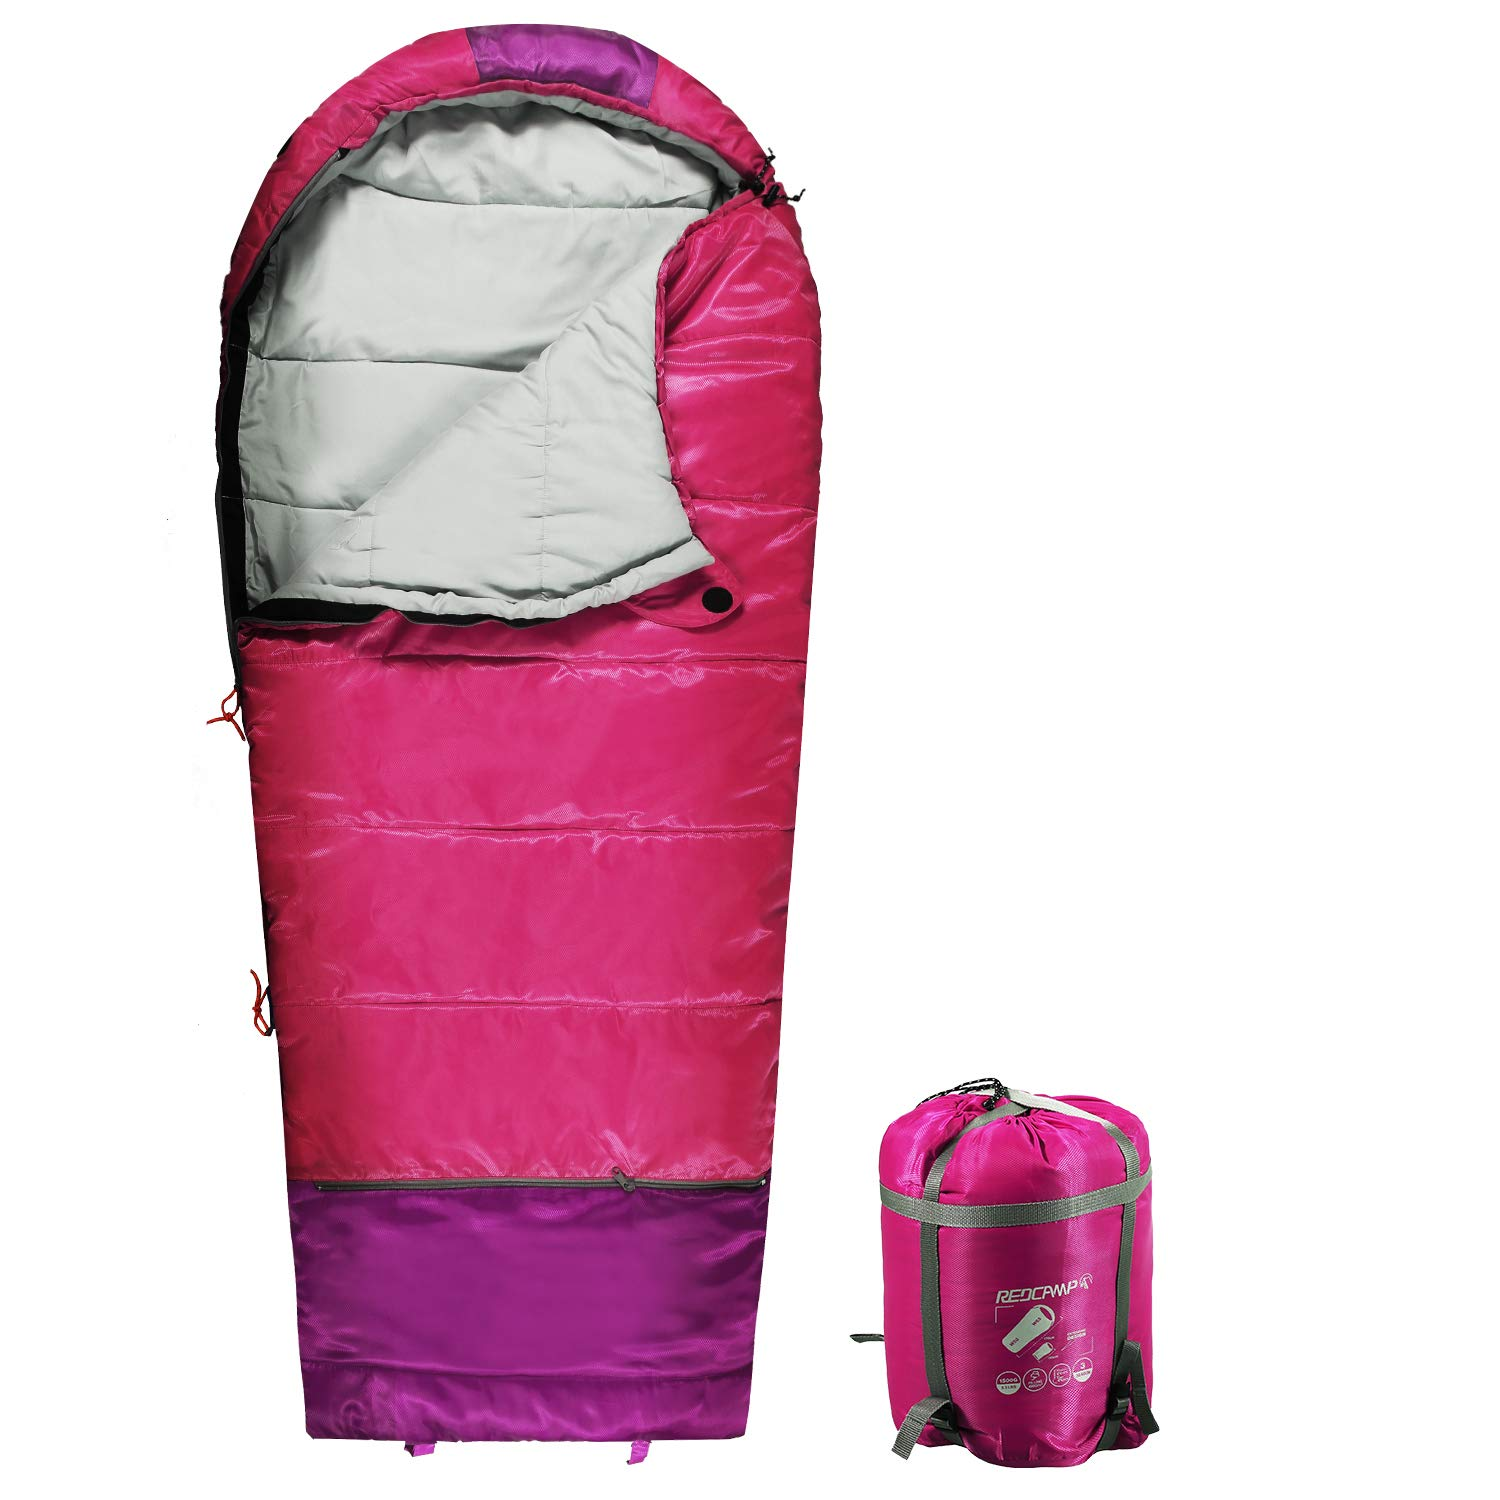 REDCAMP Kids Mummy Sleeping Bag for Camping Zipped Small, 32 Degree All Season Cold Weather Fit Boys,Girls & Teens (Pink with 3.3lbs Filling) by REDCAMP